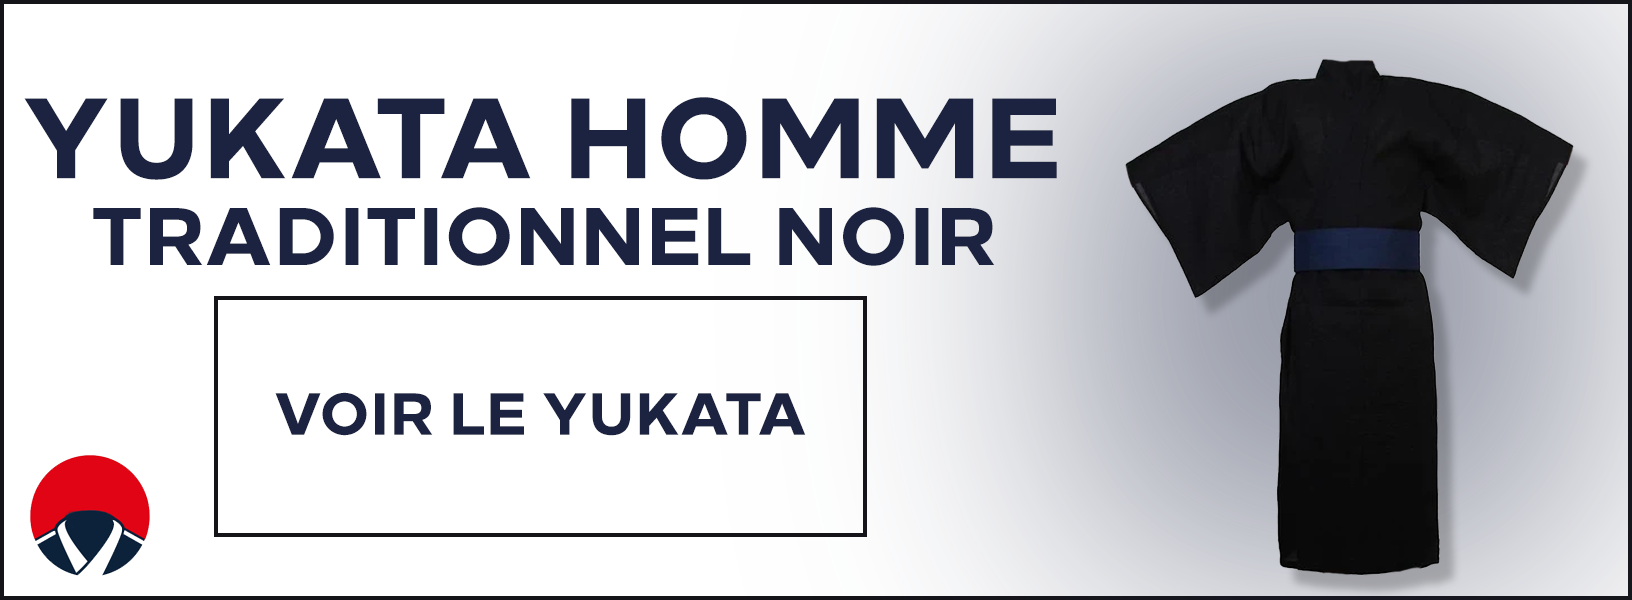 Yukata homme traditionnel noir